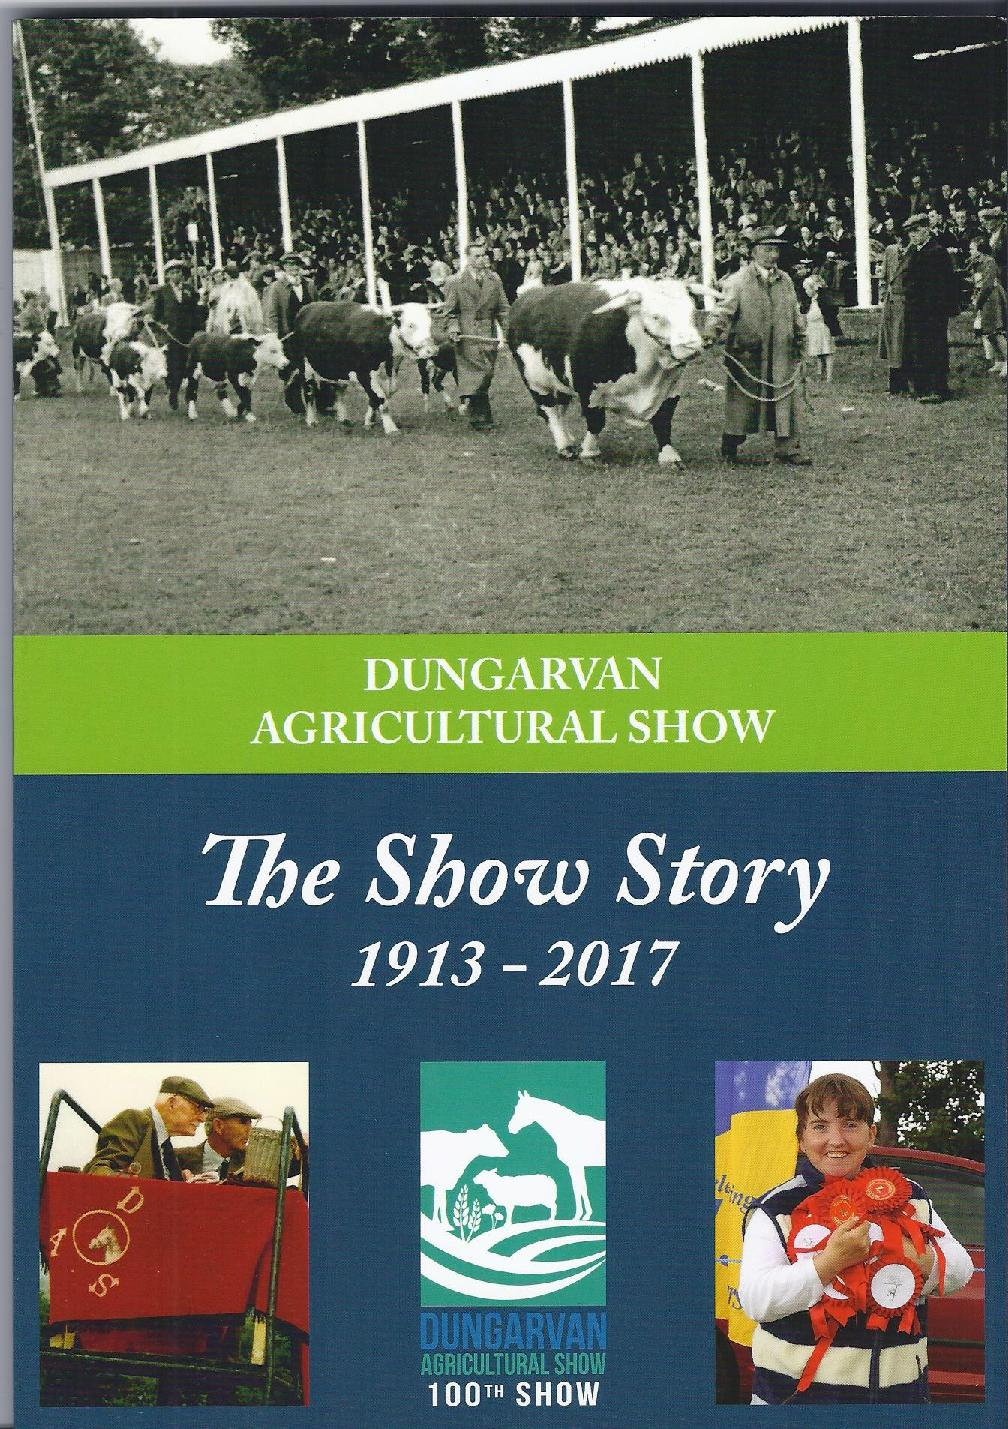 News on the Dungarvan Show this week